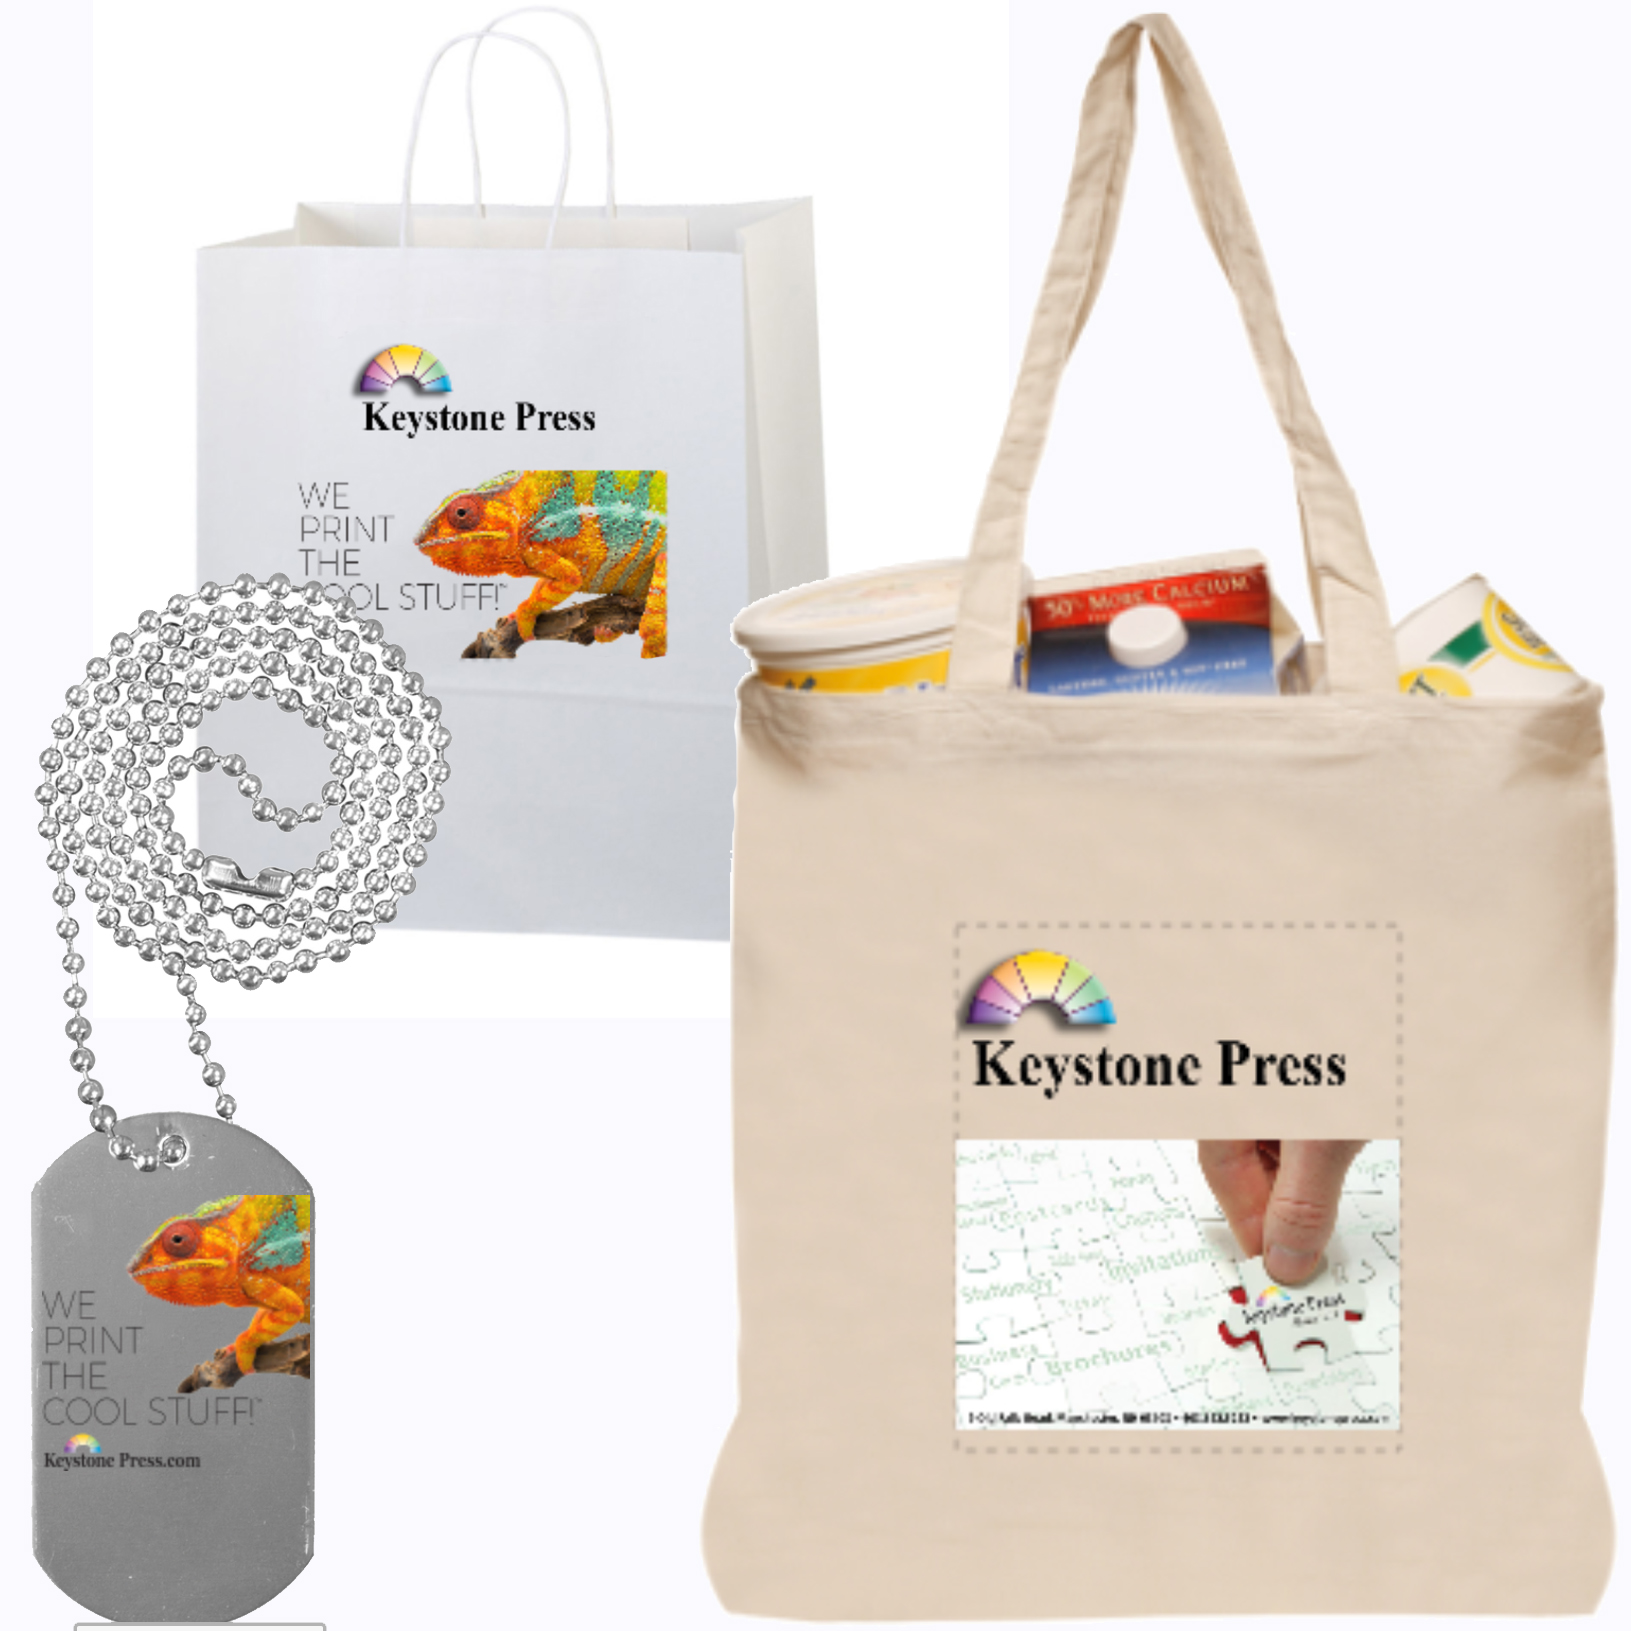 Keystone Press prints logo branded bags, totes, tags and household items